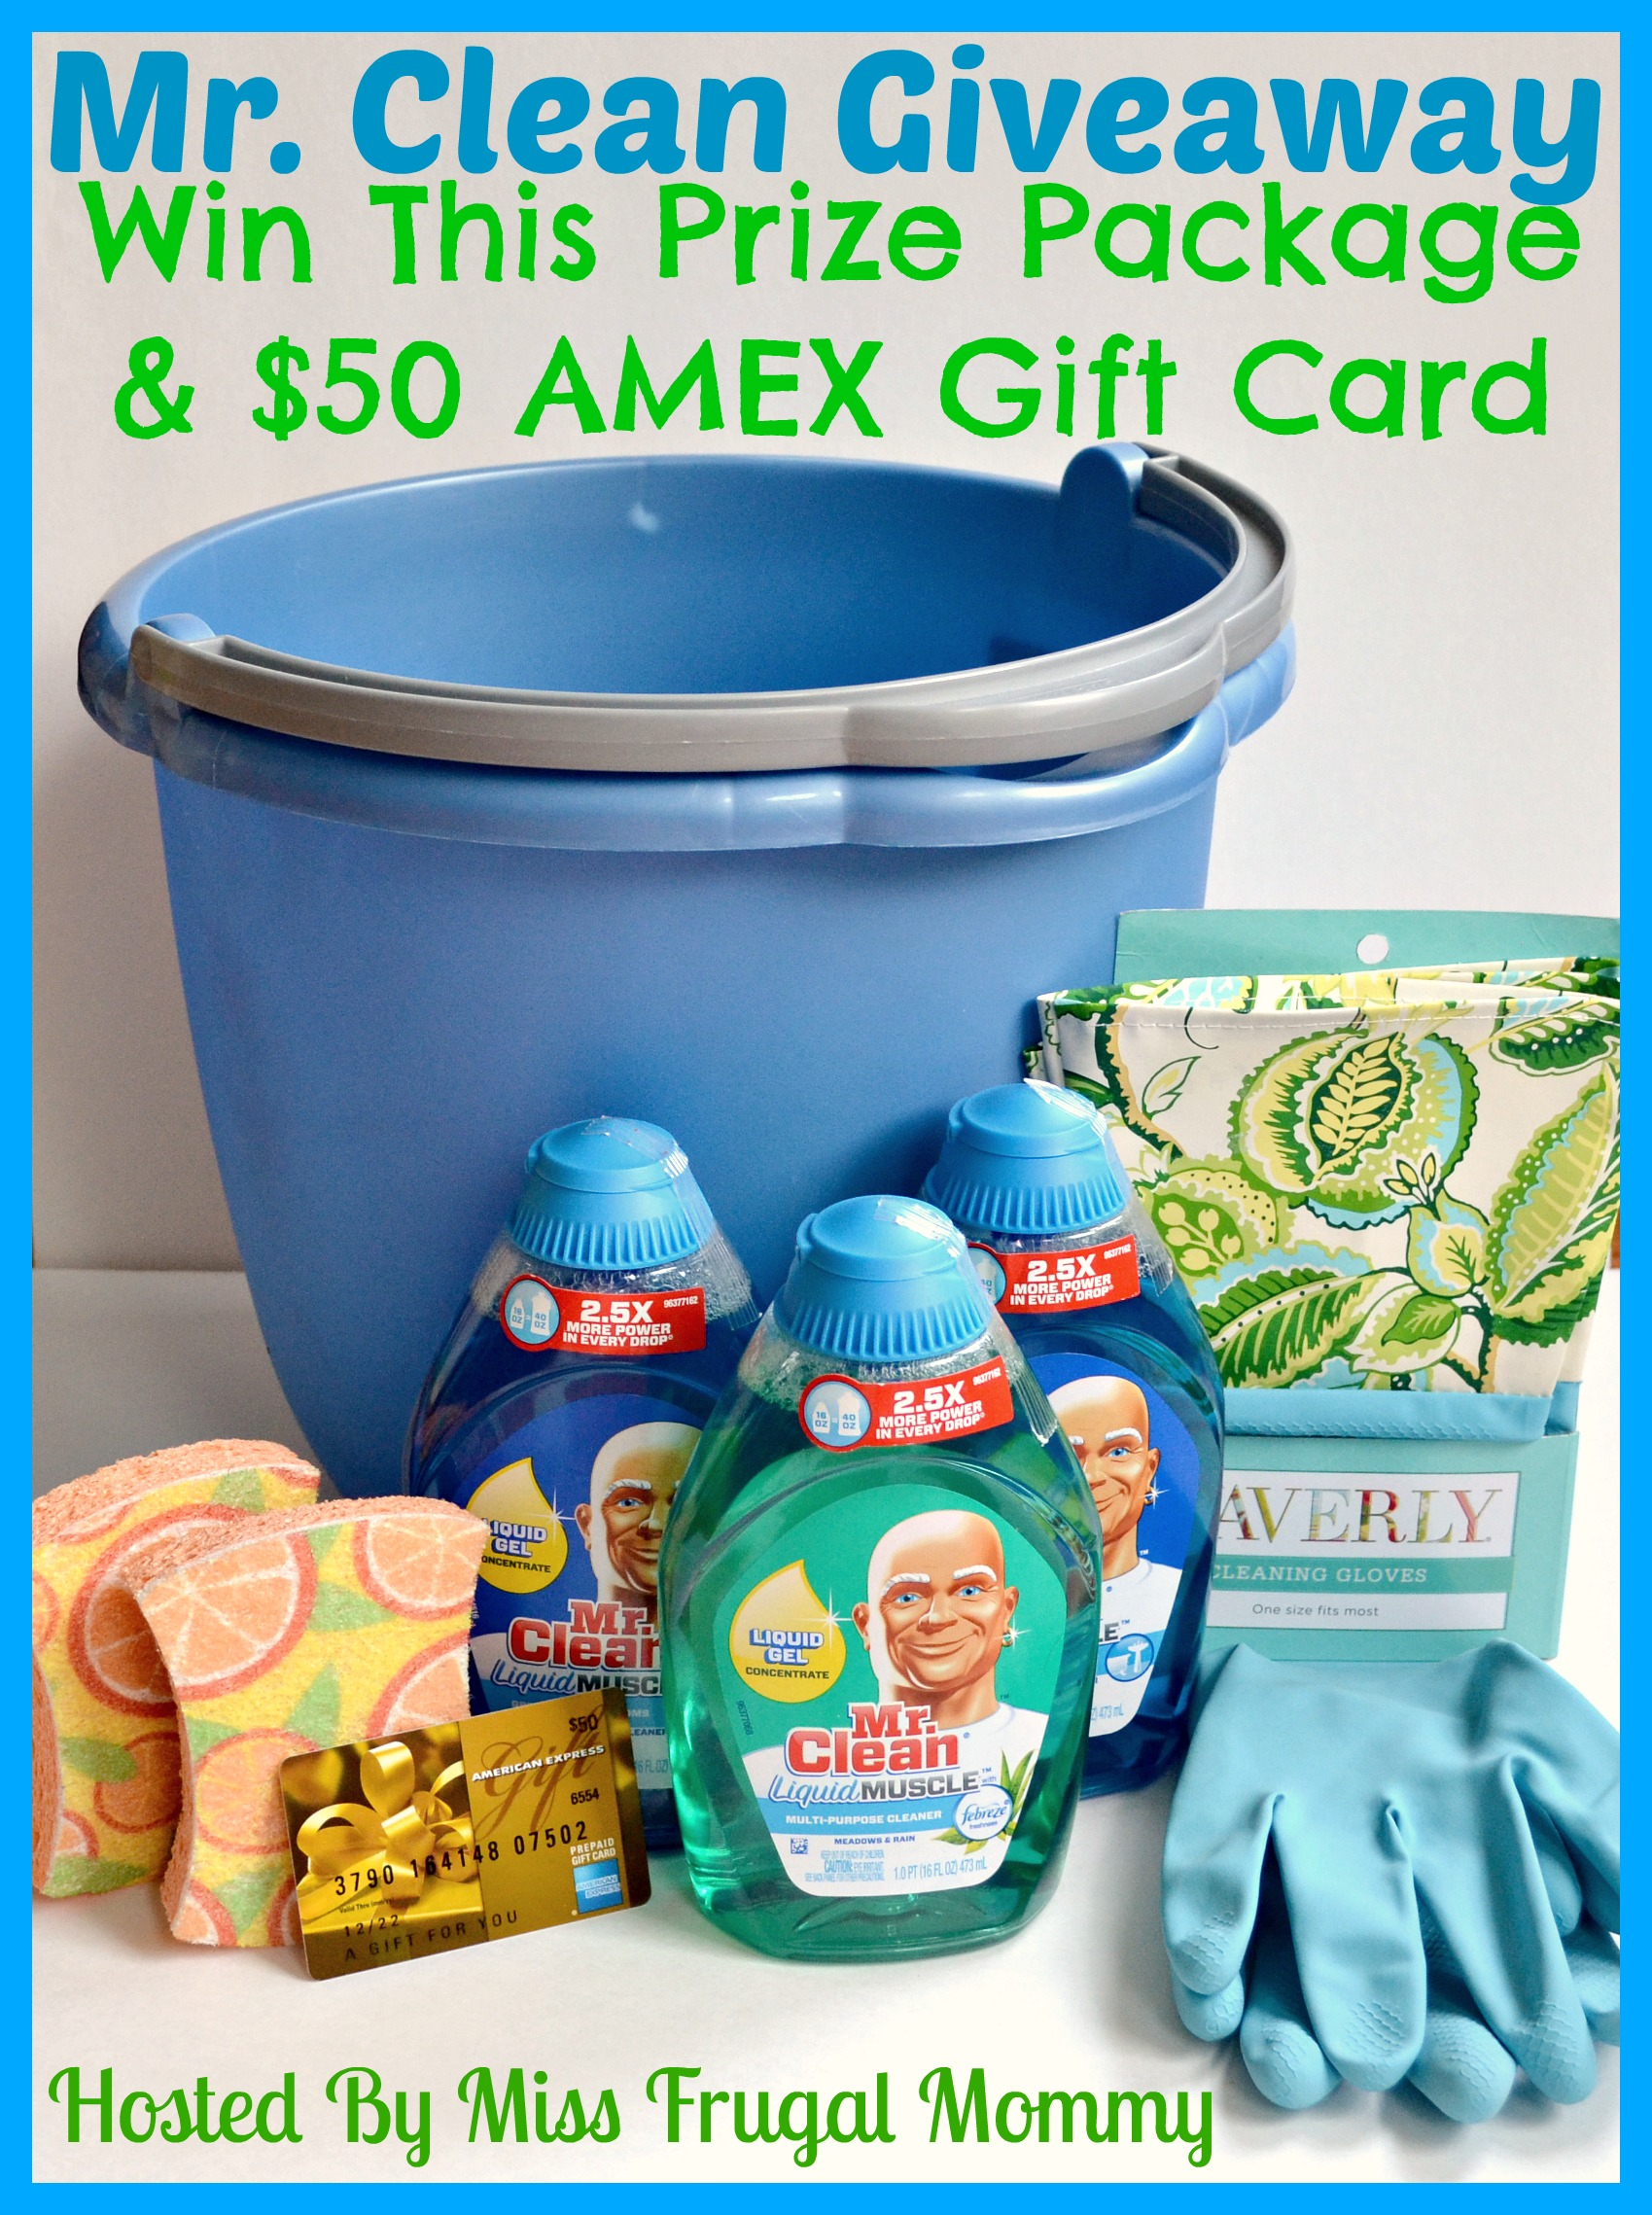 Mr. Clean's Prize Package & $50 AMEX Gift Card Giveaway Ends 5/11